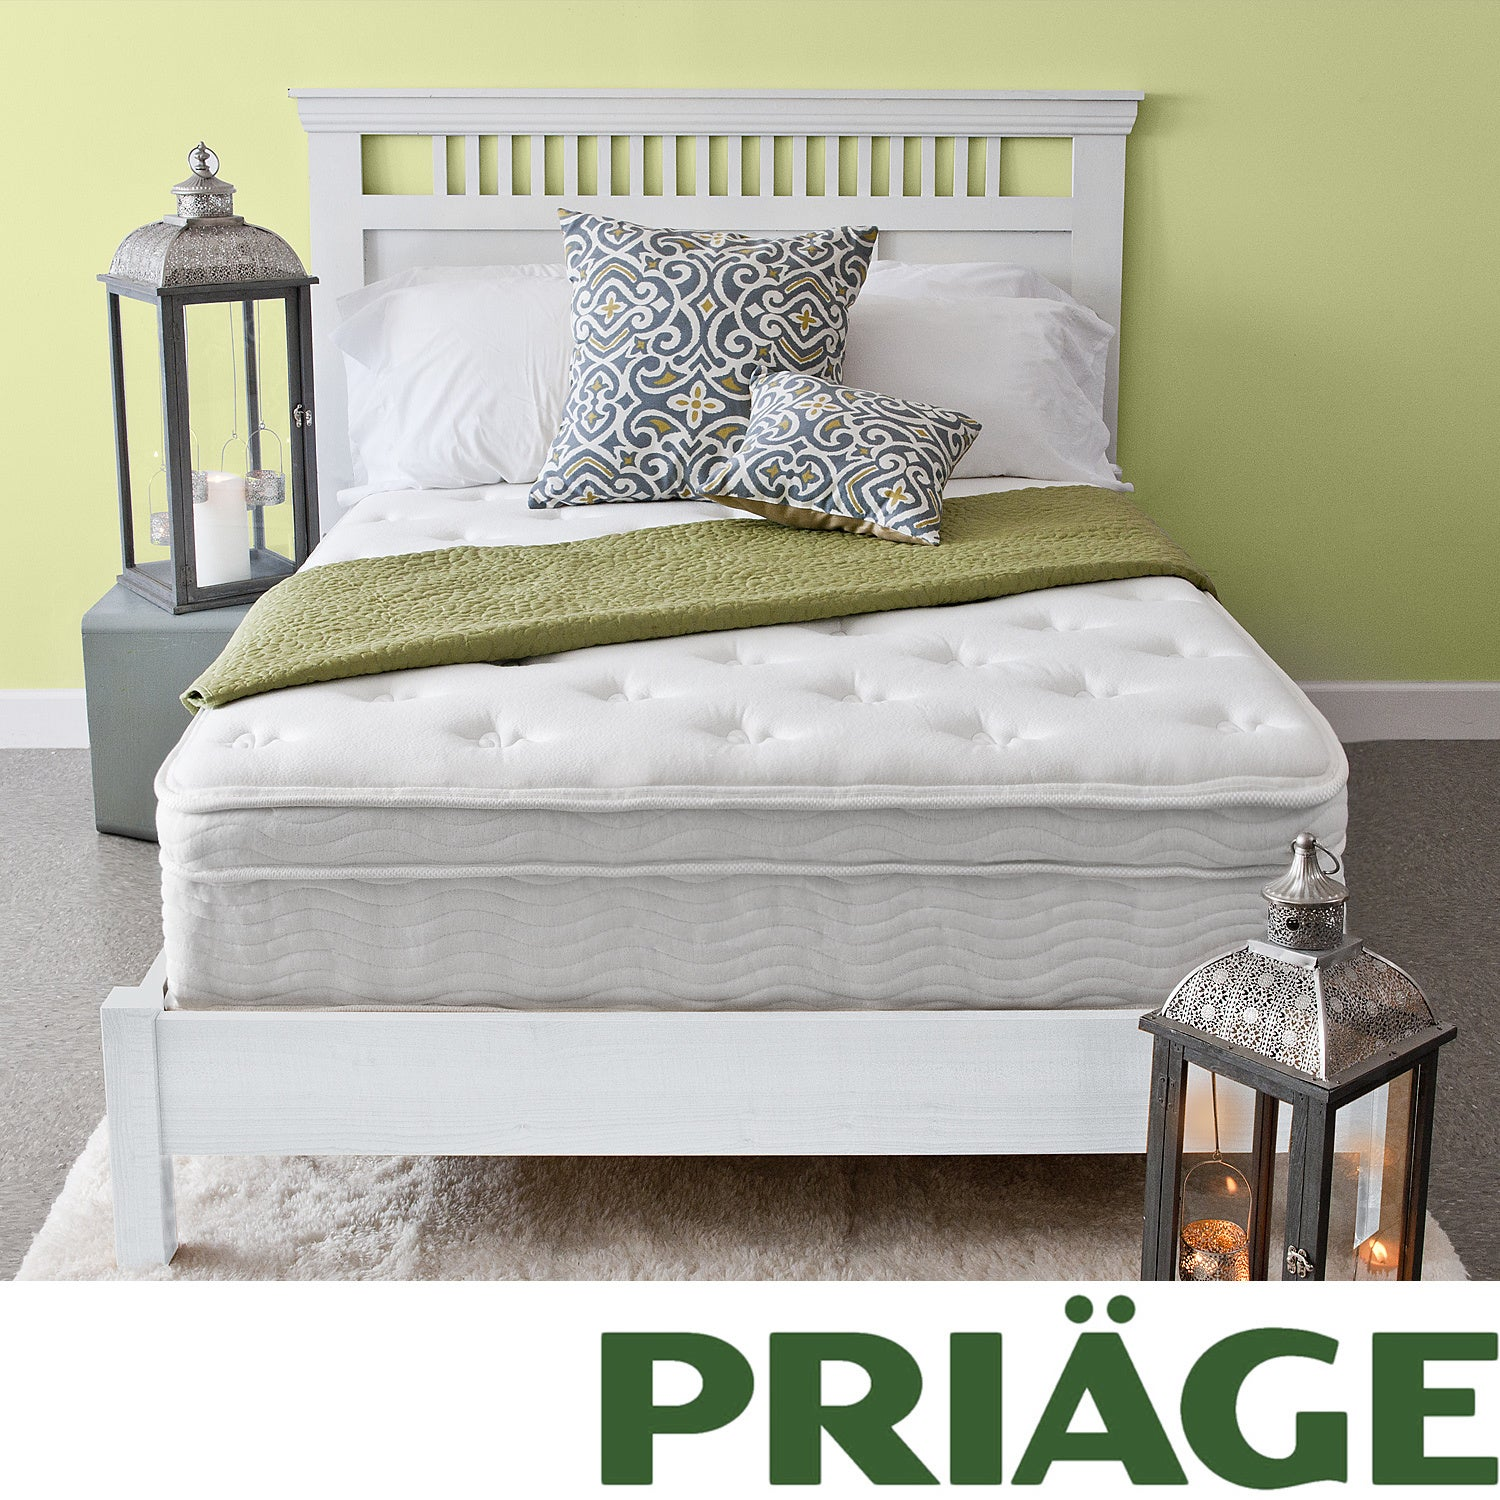 Priage Euro Box Top 13-inch Full-size iCoil Spring Mattress at Sears.com